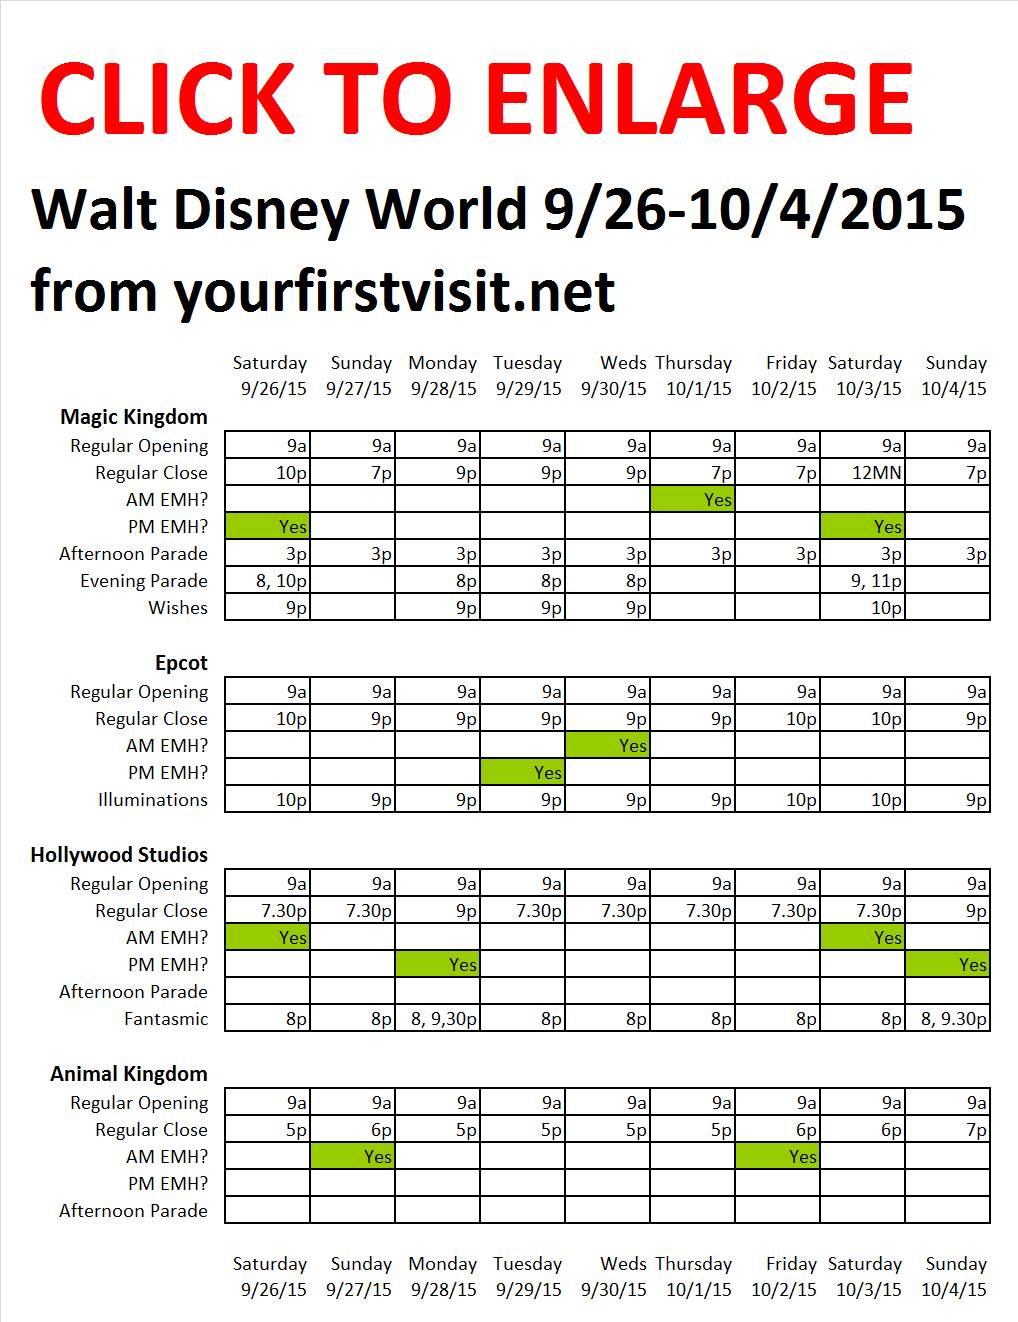 Disney World 9-26 to 10-4-2015 from yourfirstvisit.net